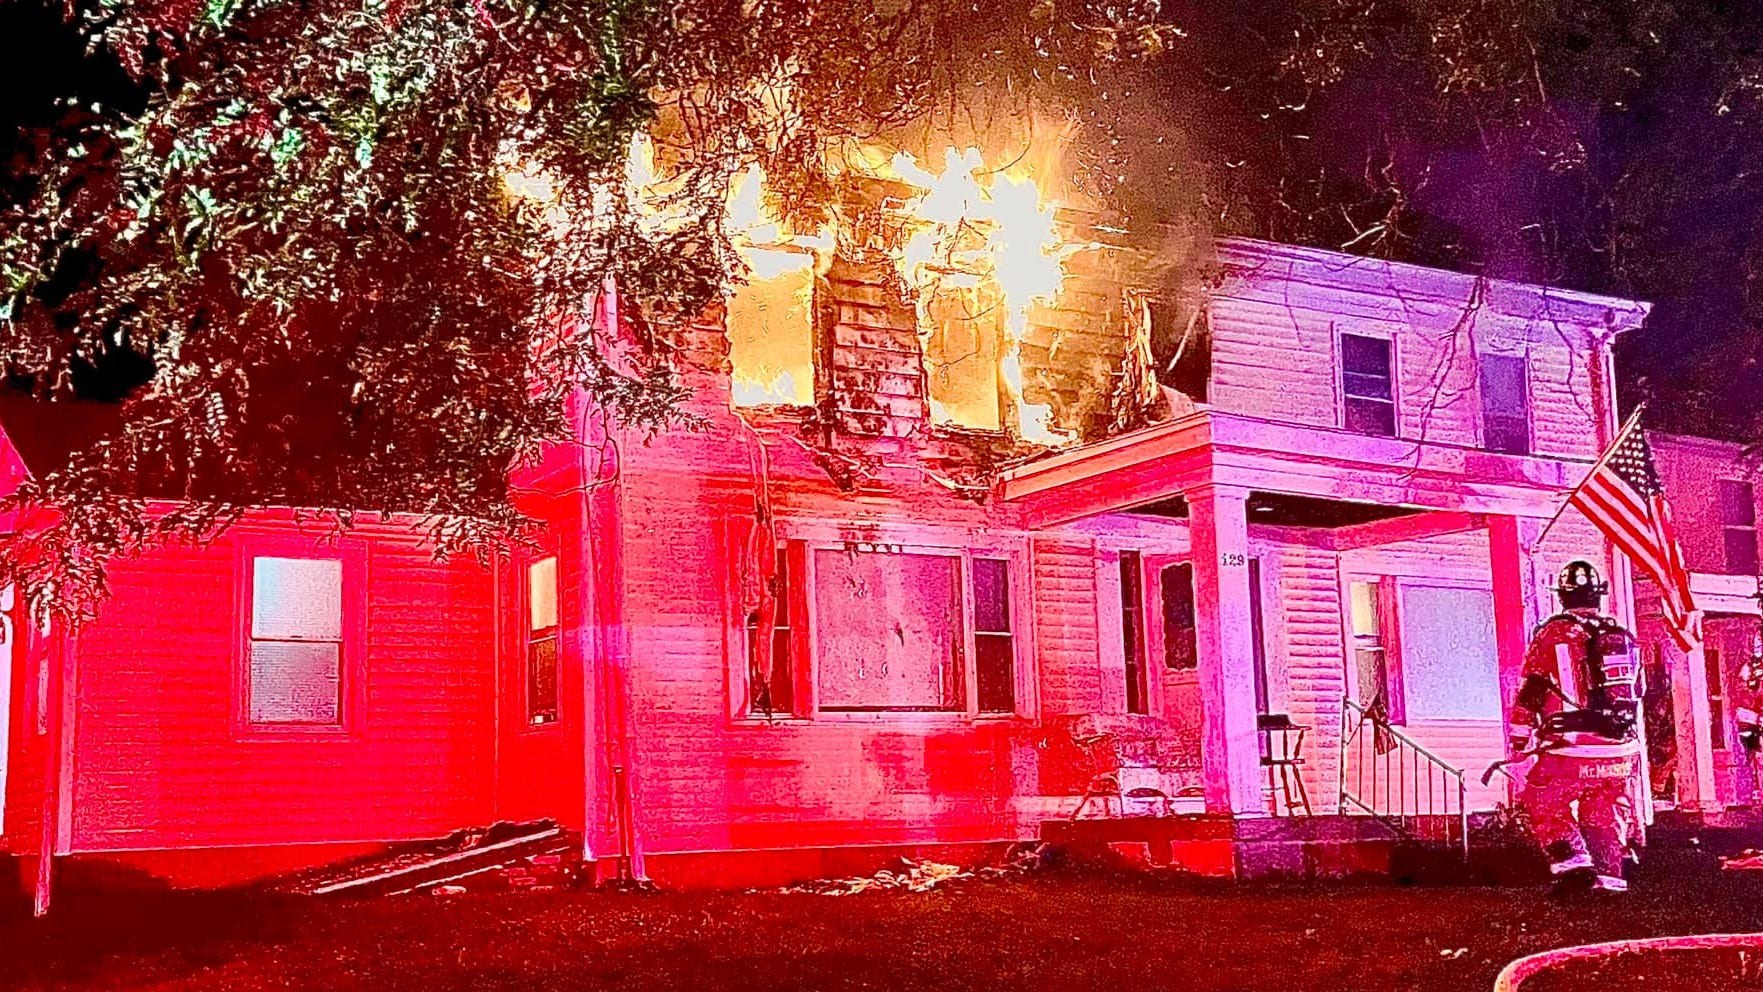 One dead in Northborough house fire, lack of smoke alarms let fire spread